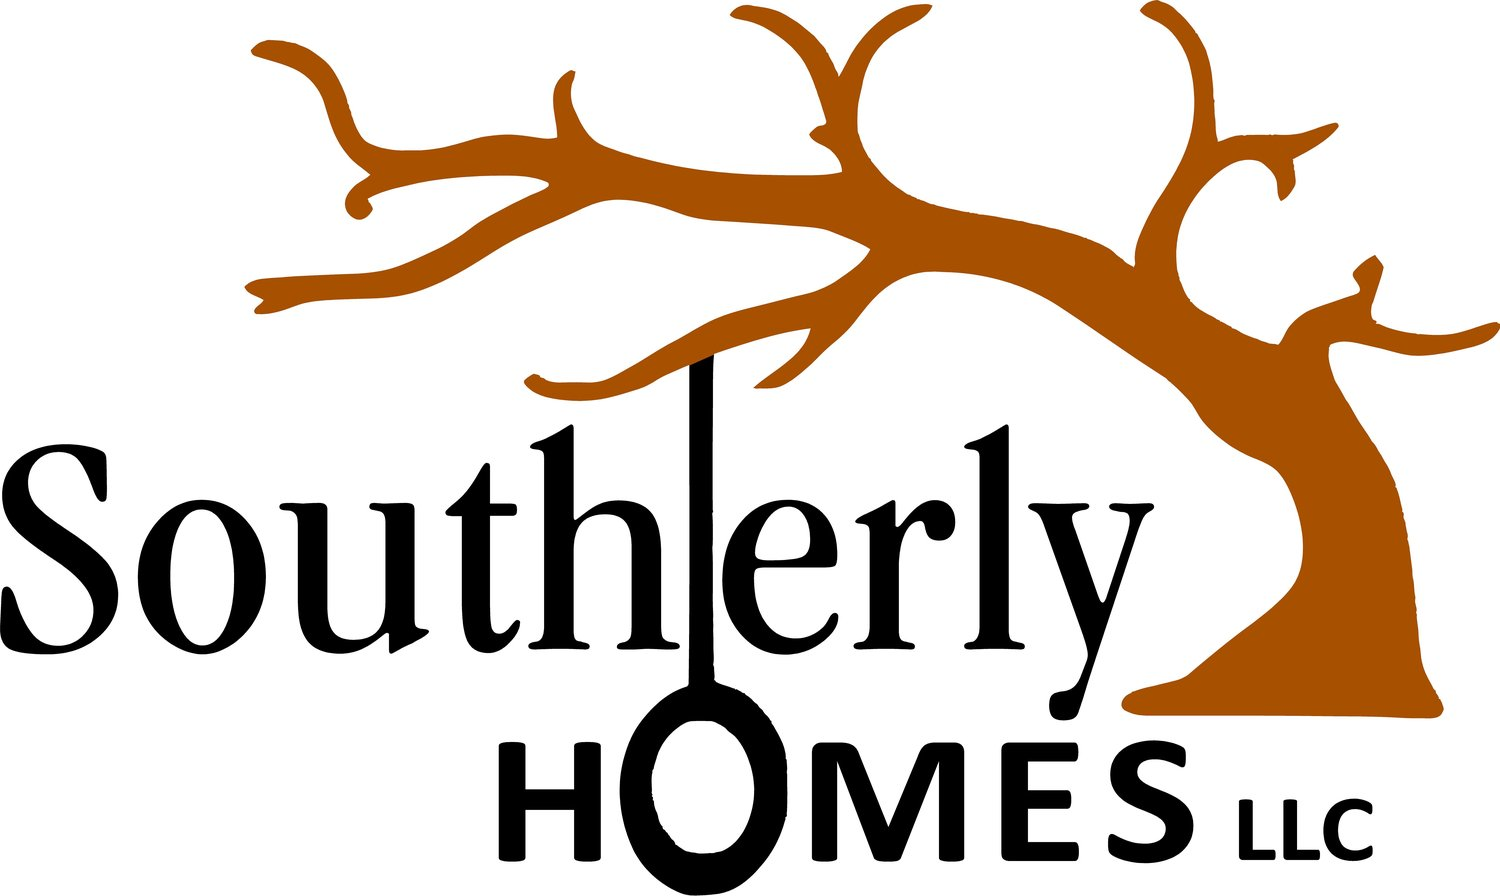 Southerly Homes